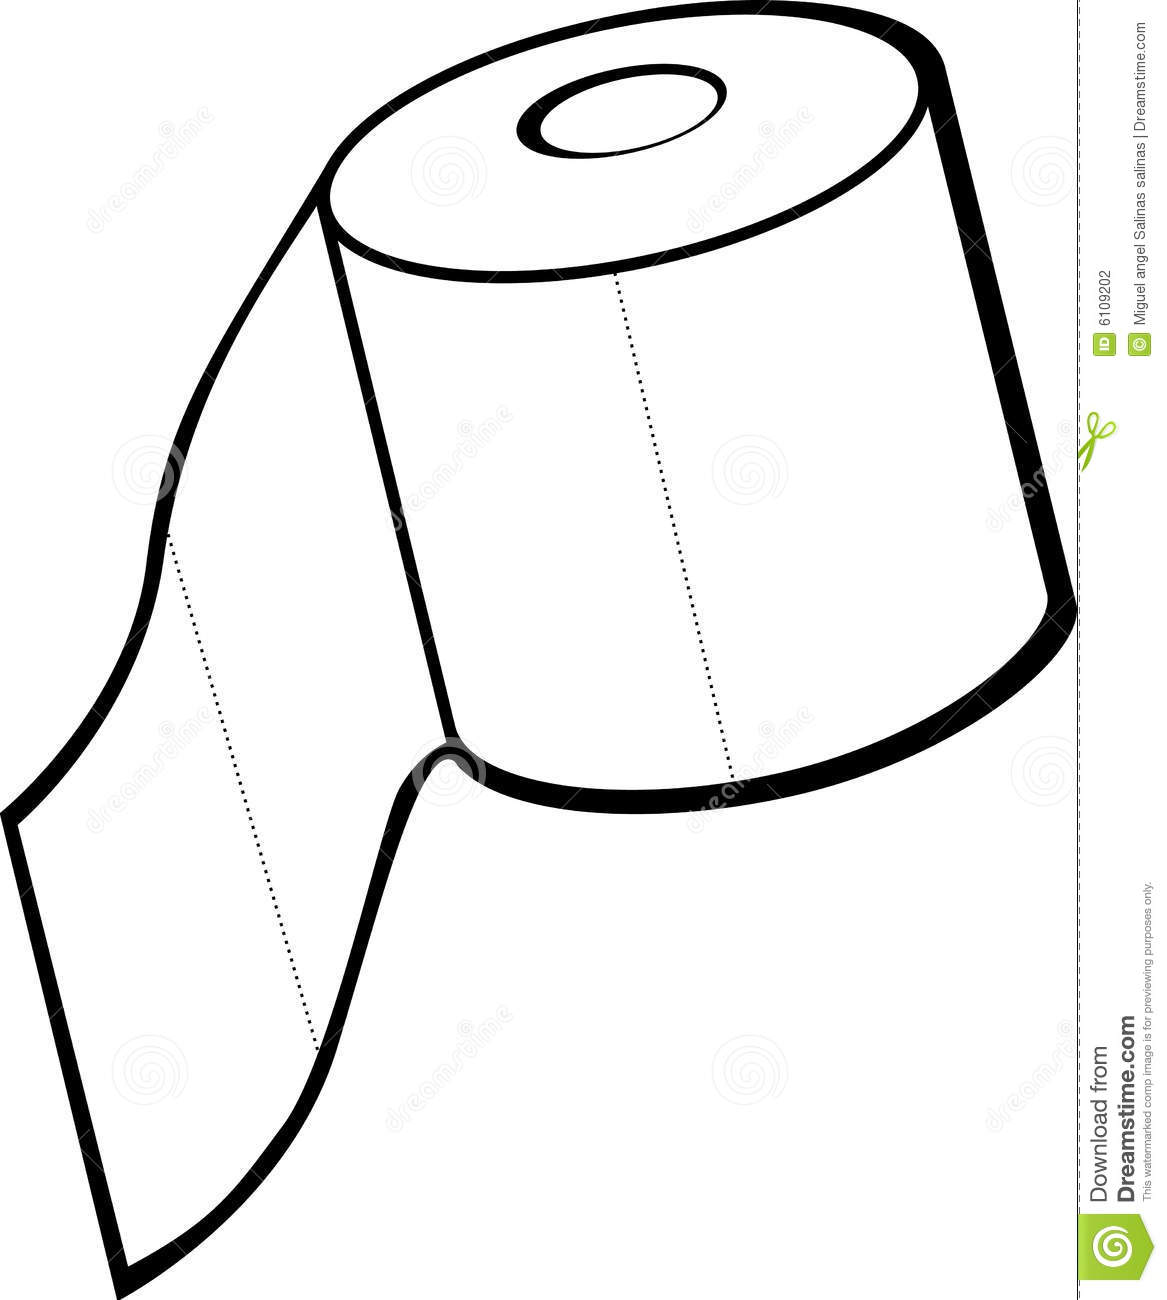 Clip Art of Toilet Tissue Roll.